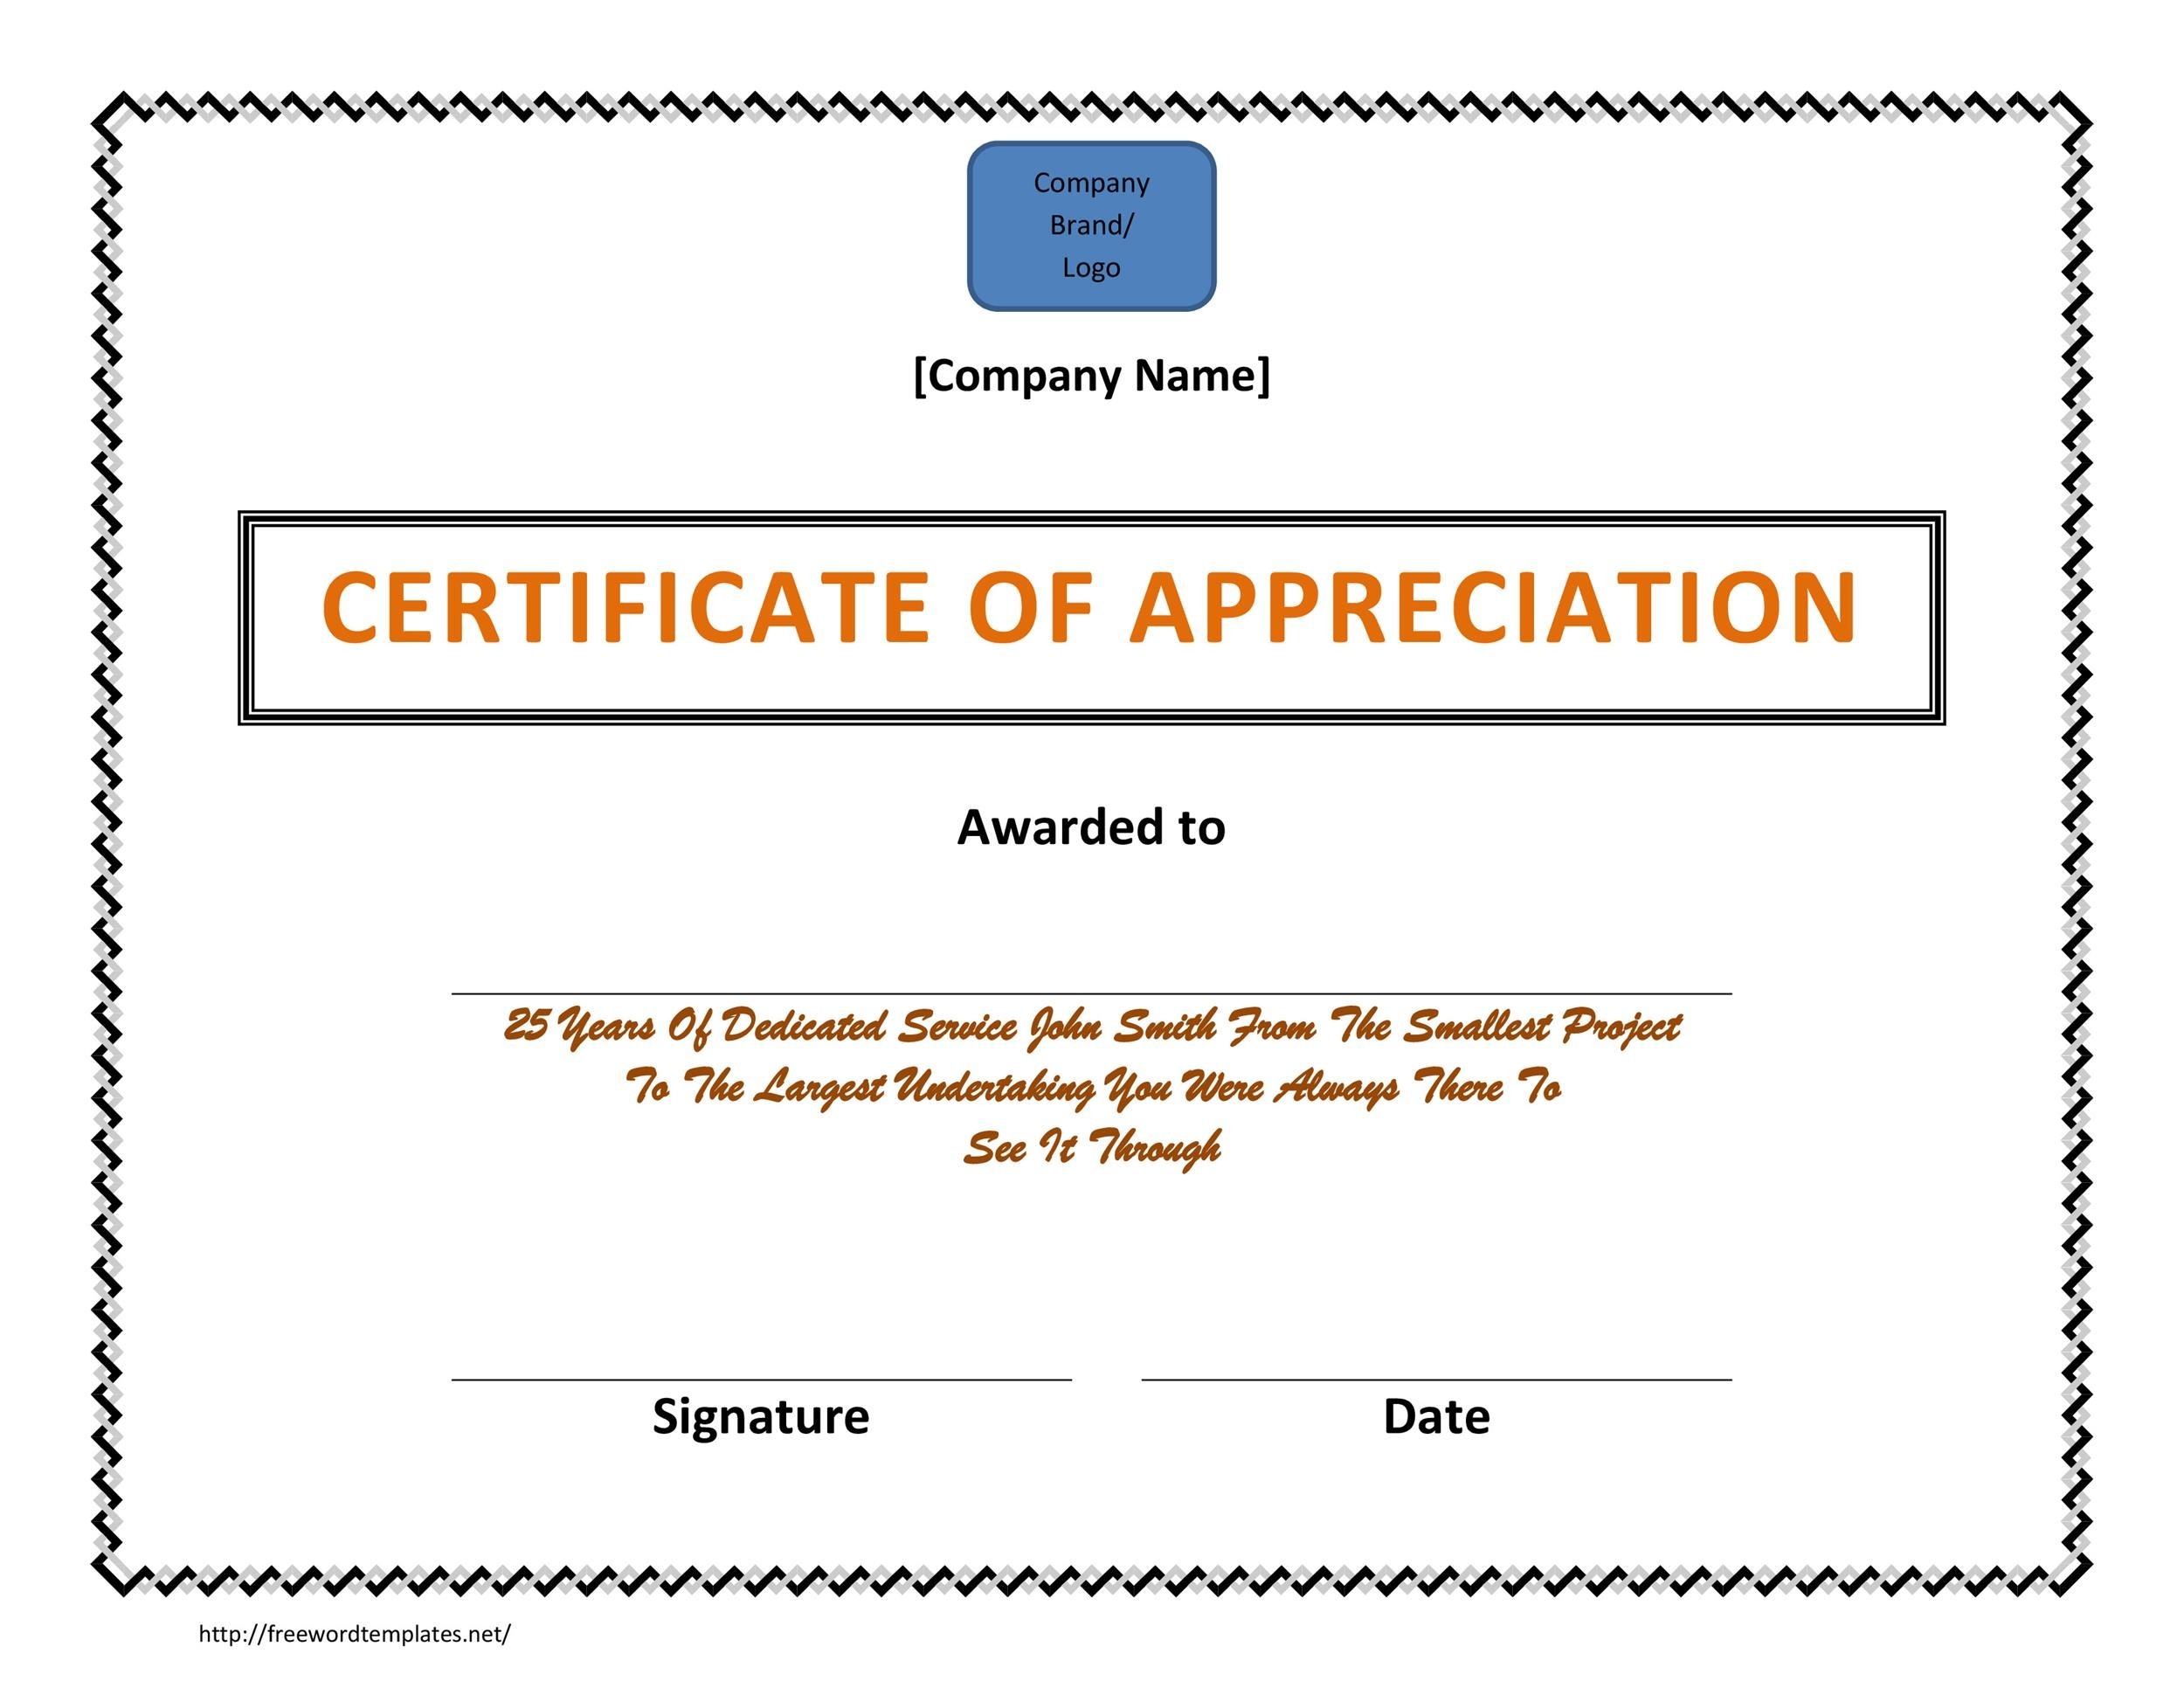 Free certificate of appreciation templates and letters printable certificate of appreciation 05 yelopaper Choice Image